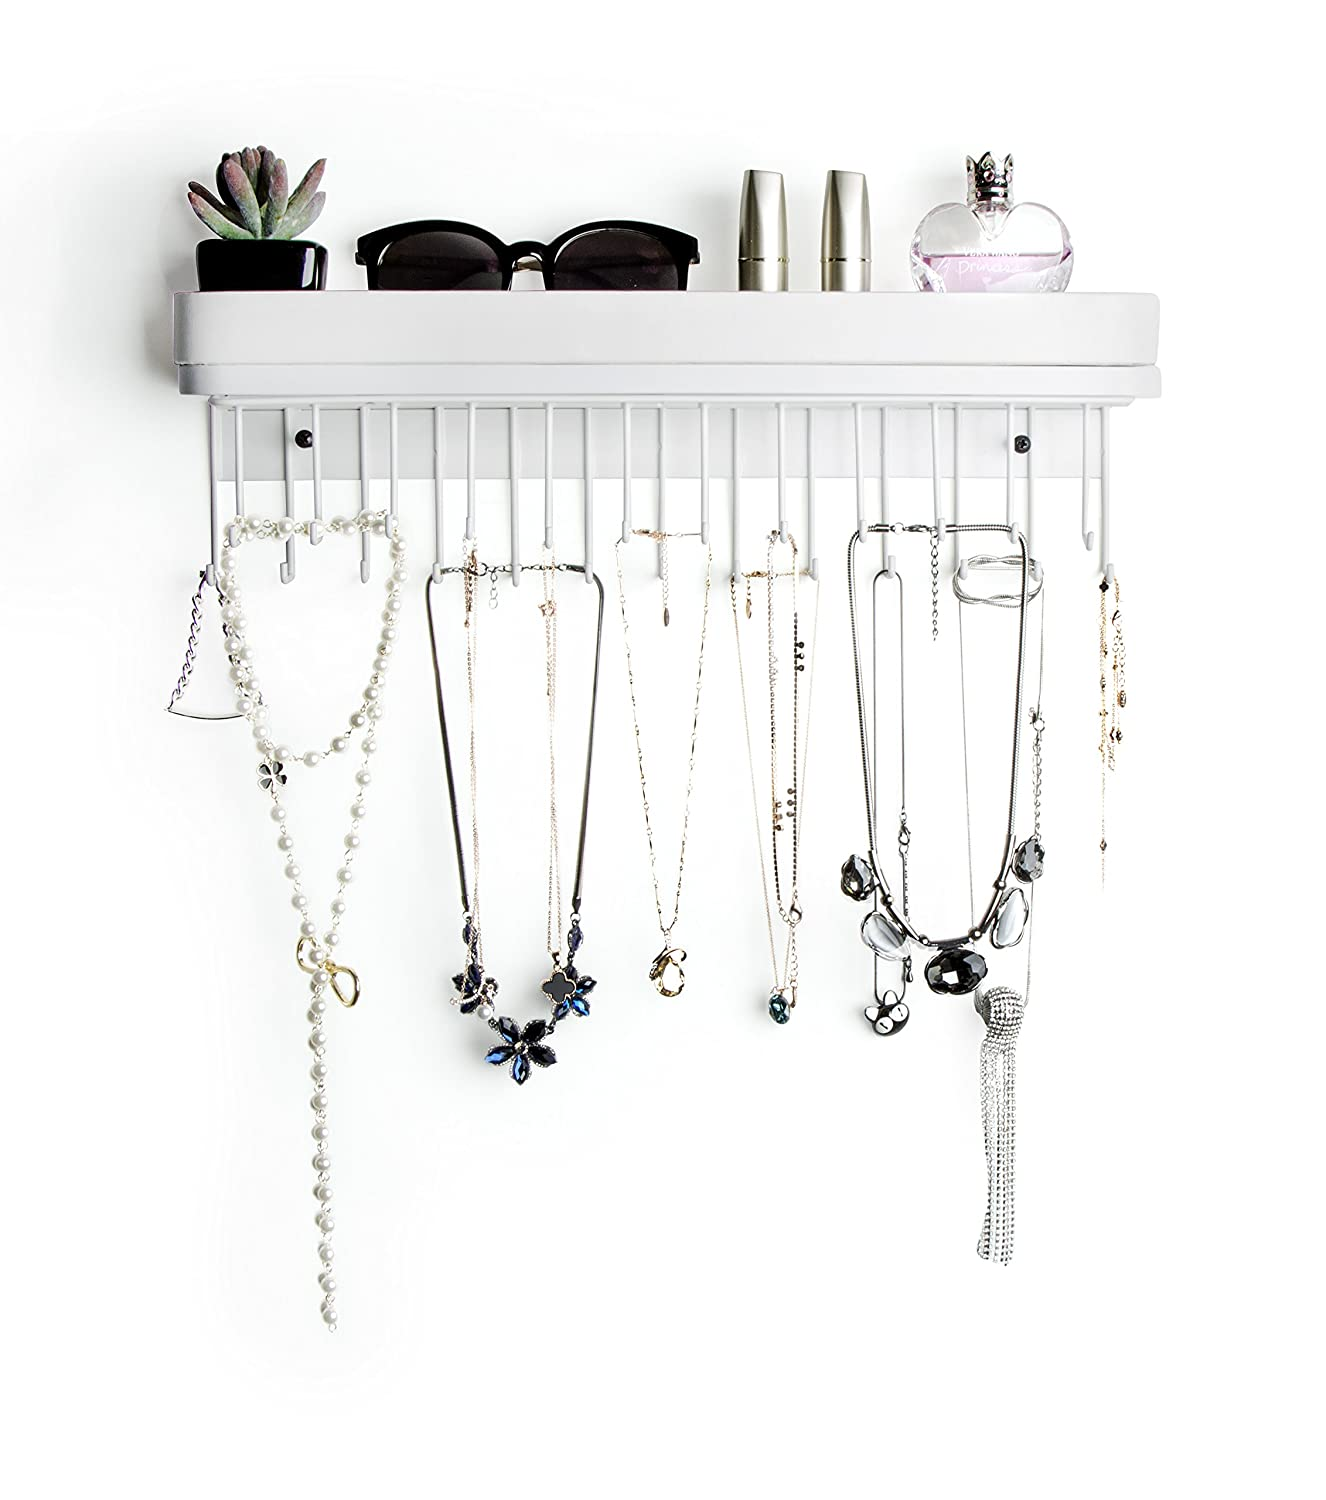 Hanging Jewelry Organizer Necklace Hanger Bracelet Holder Wall Mount Necklace Organizer with 25 Hooks(White/16.4 x 2.9 x 4.9 Inches)